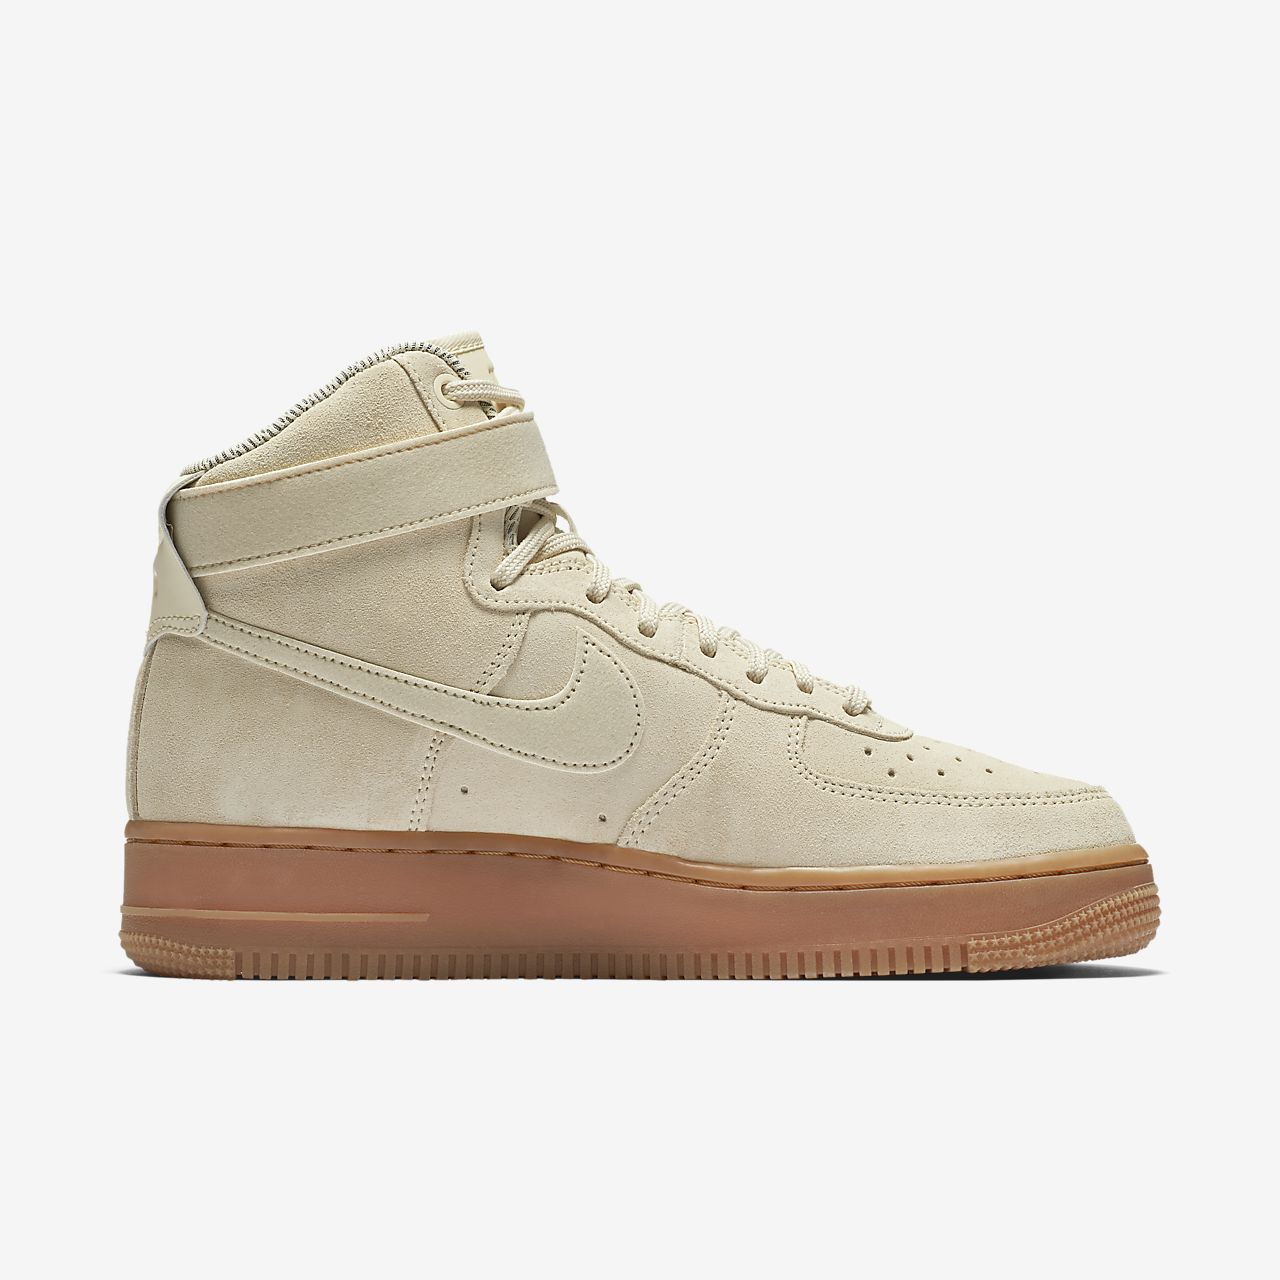 nike force high